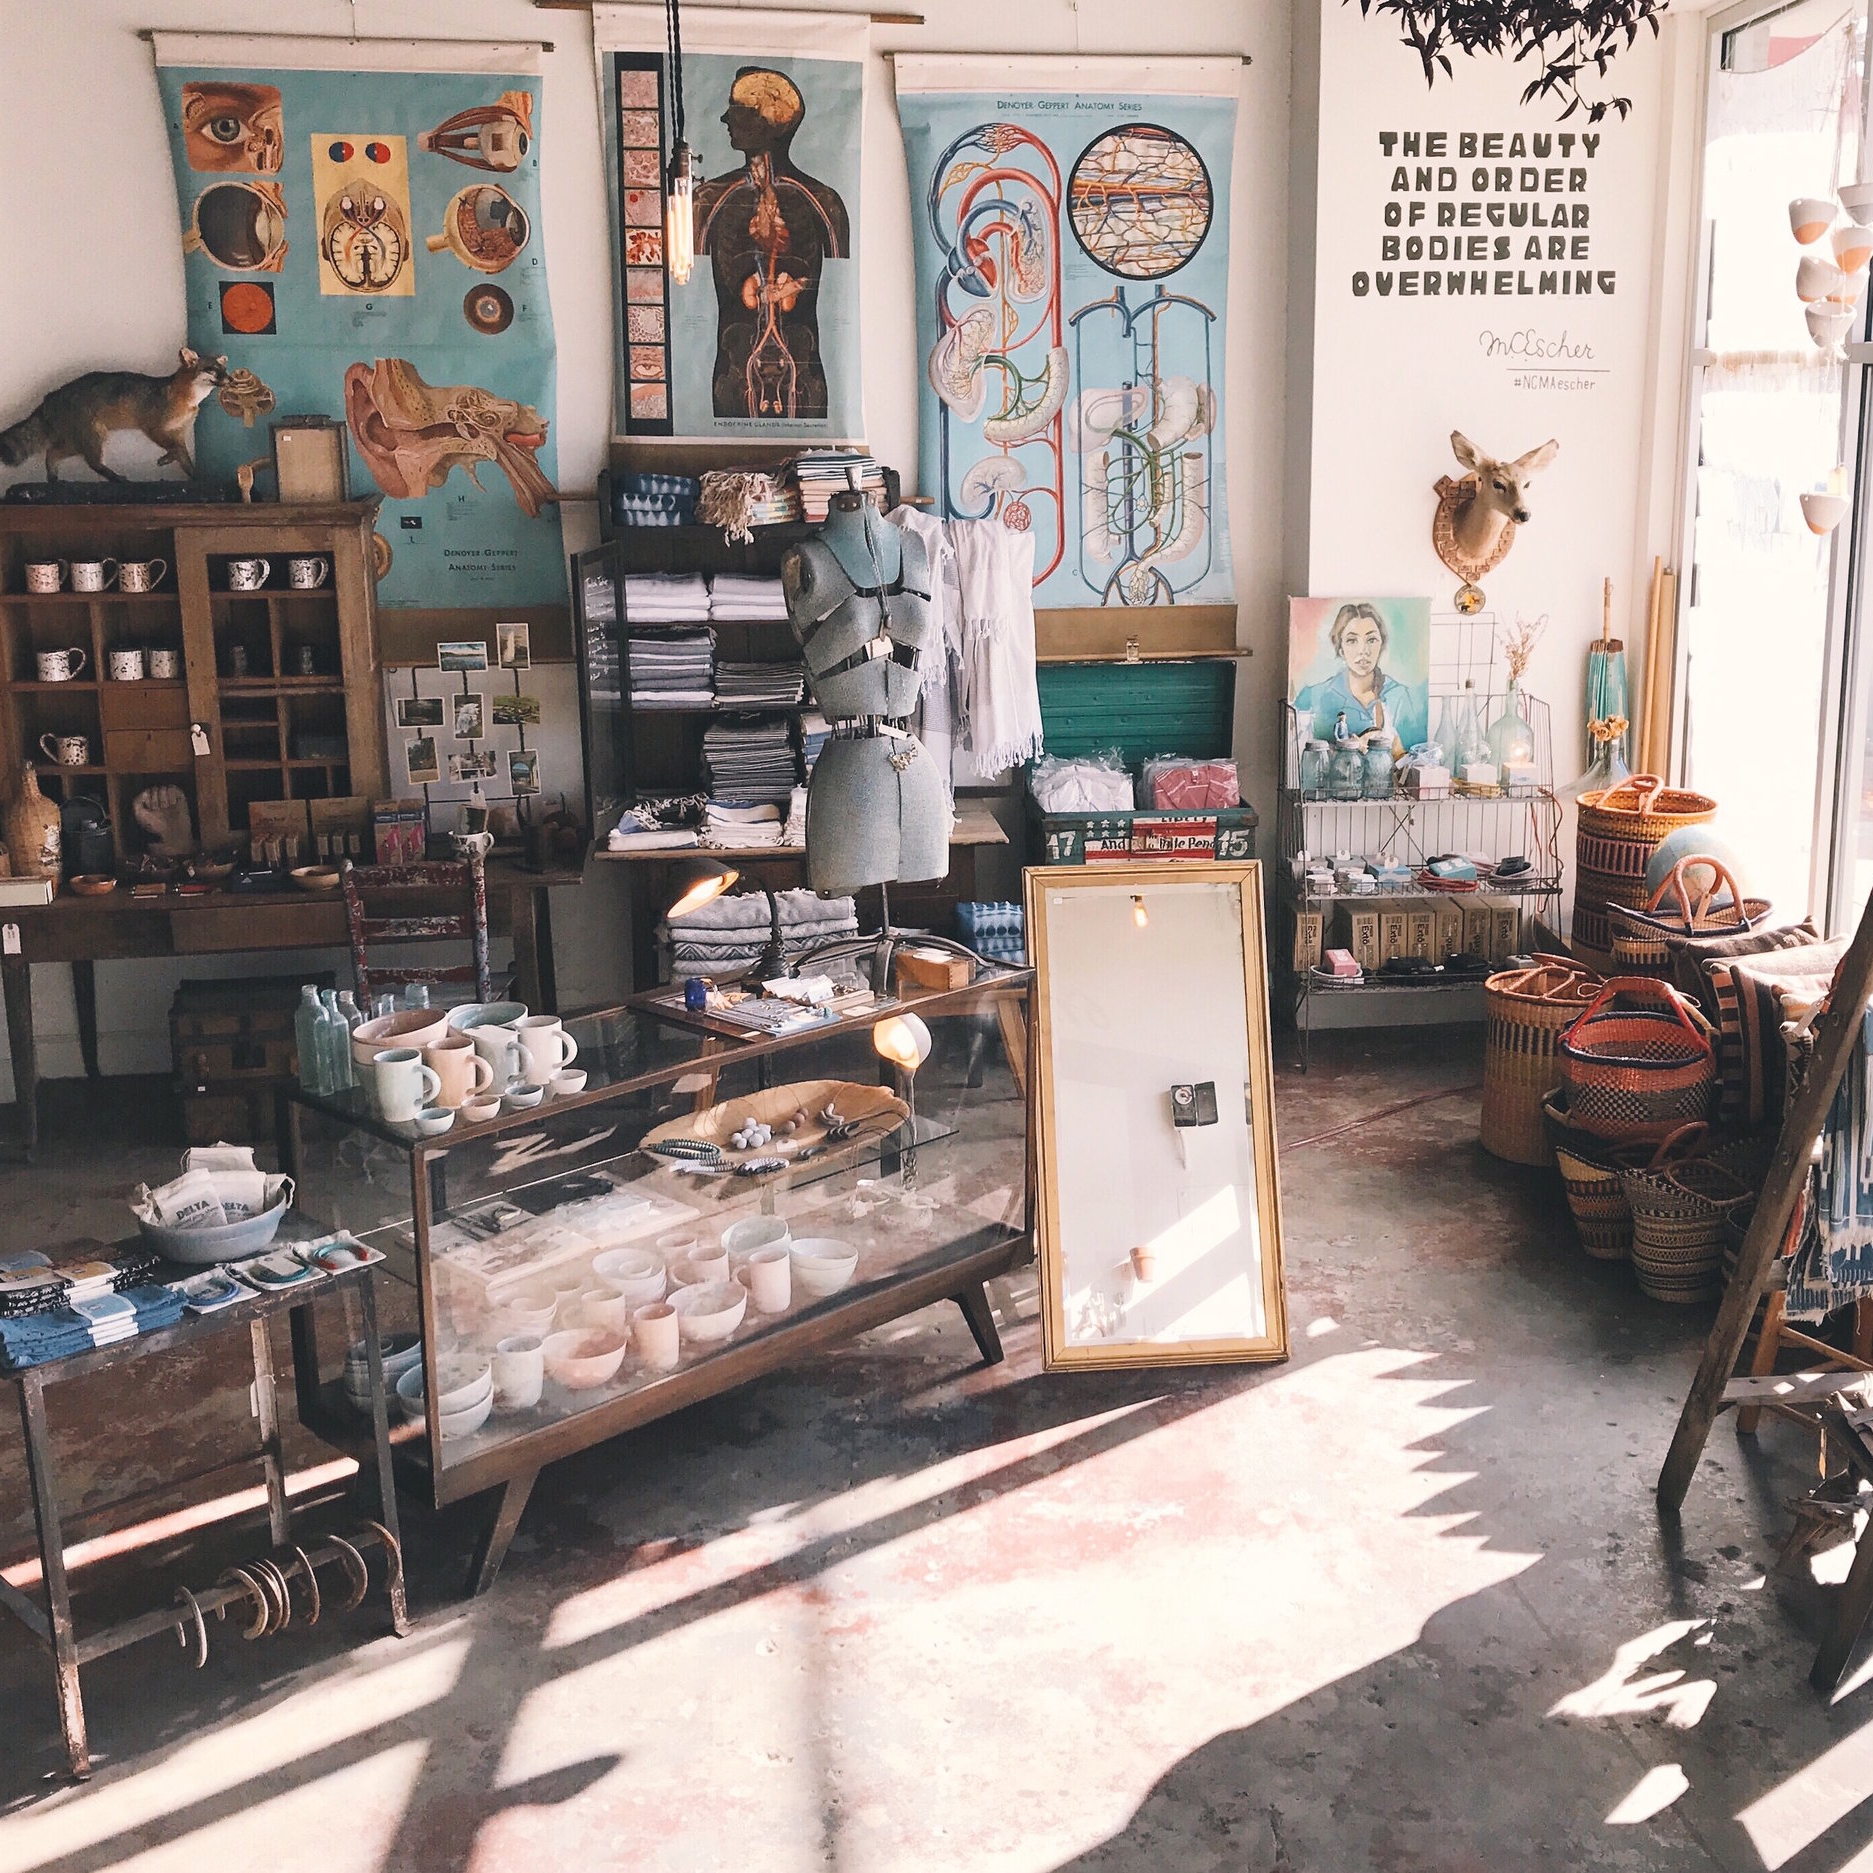 Holder Goods & Crafts - Home goods with a story. Design services with heart612 W South St.